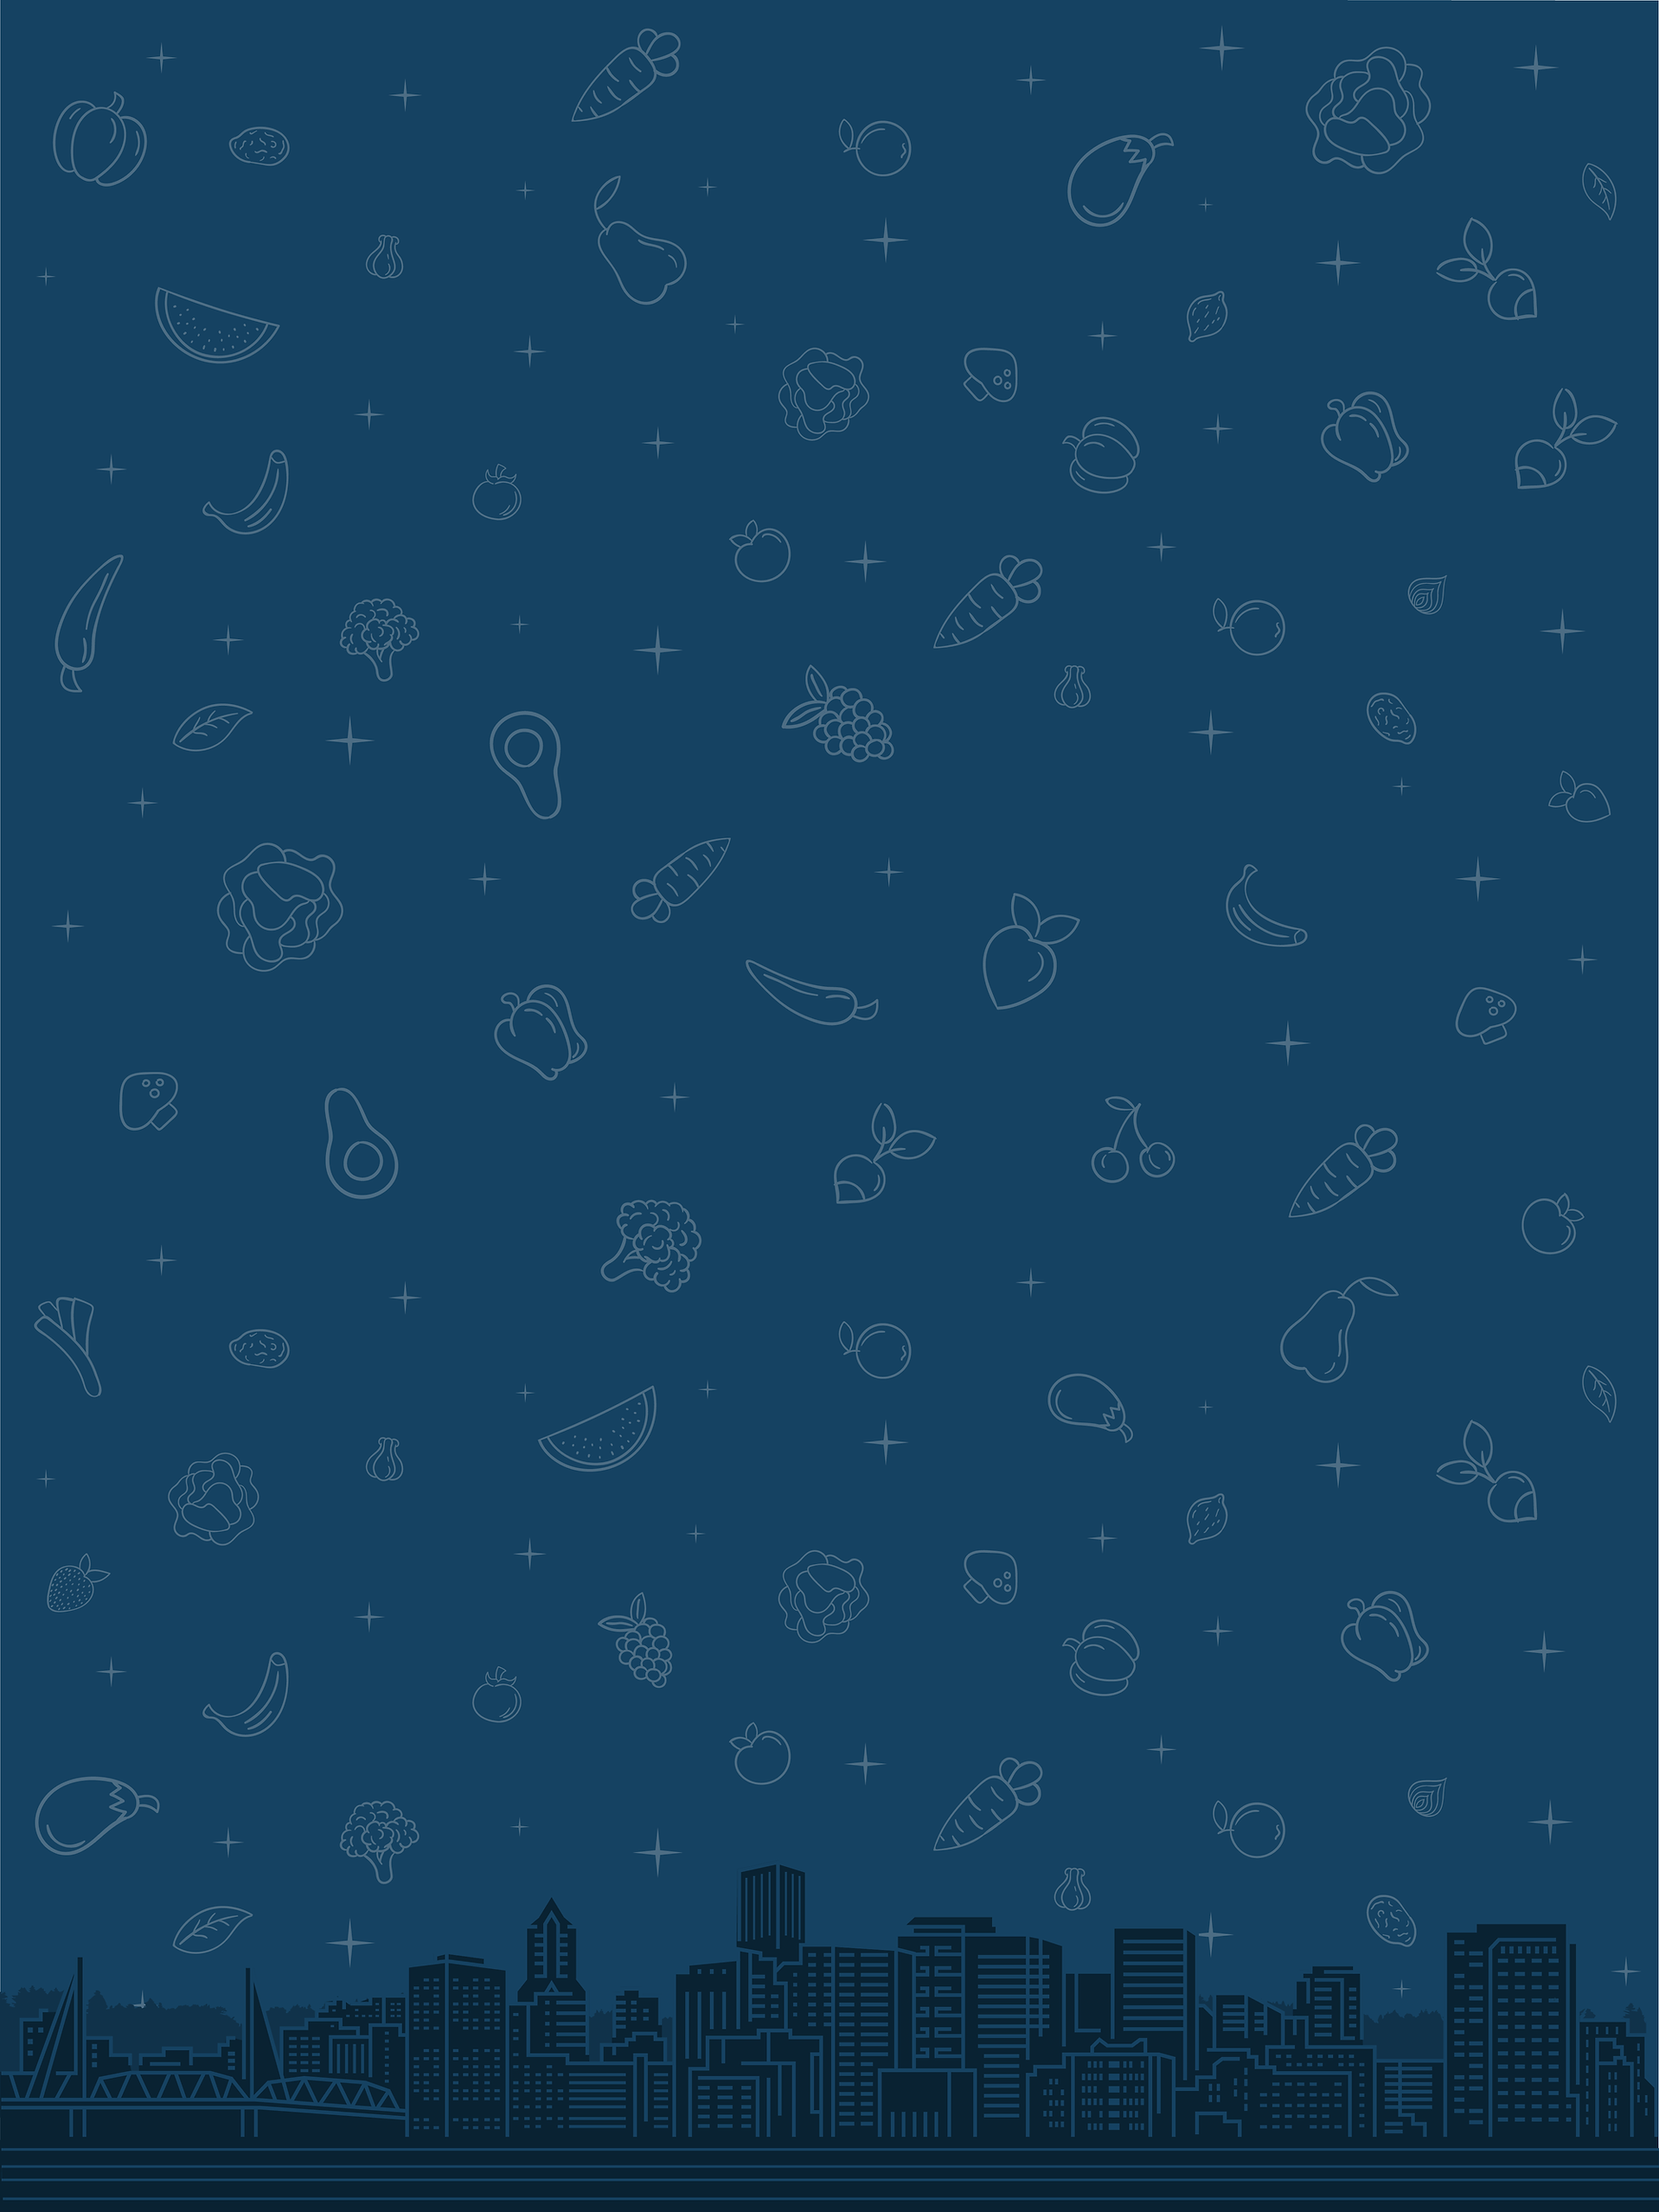 Background_only-2160x2880_2x.png